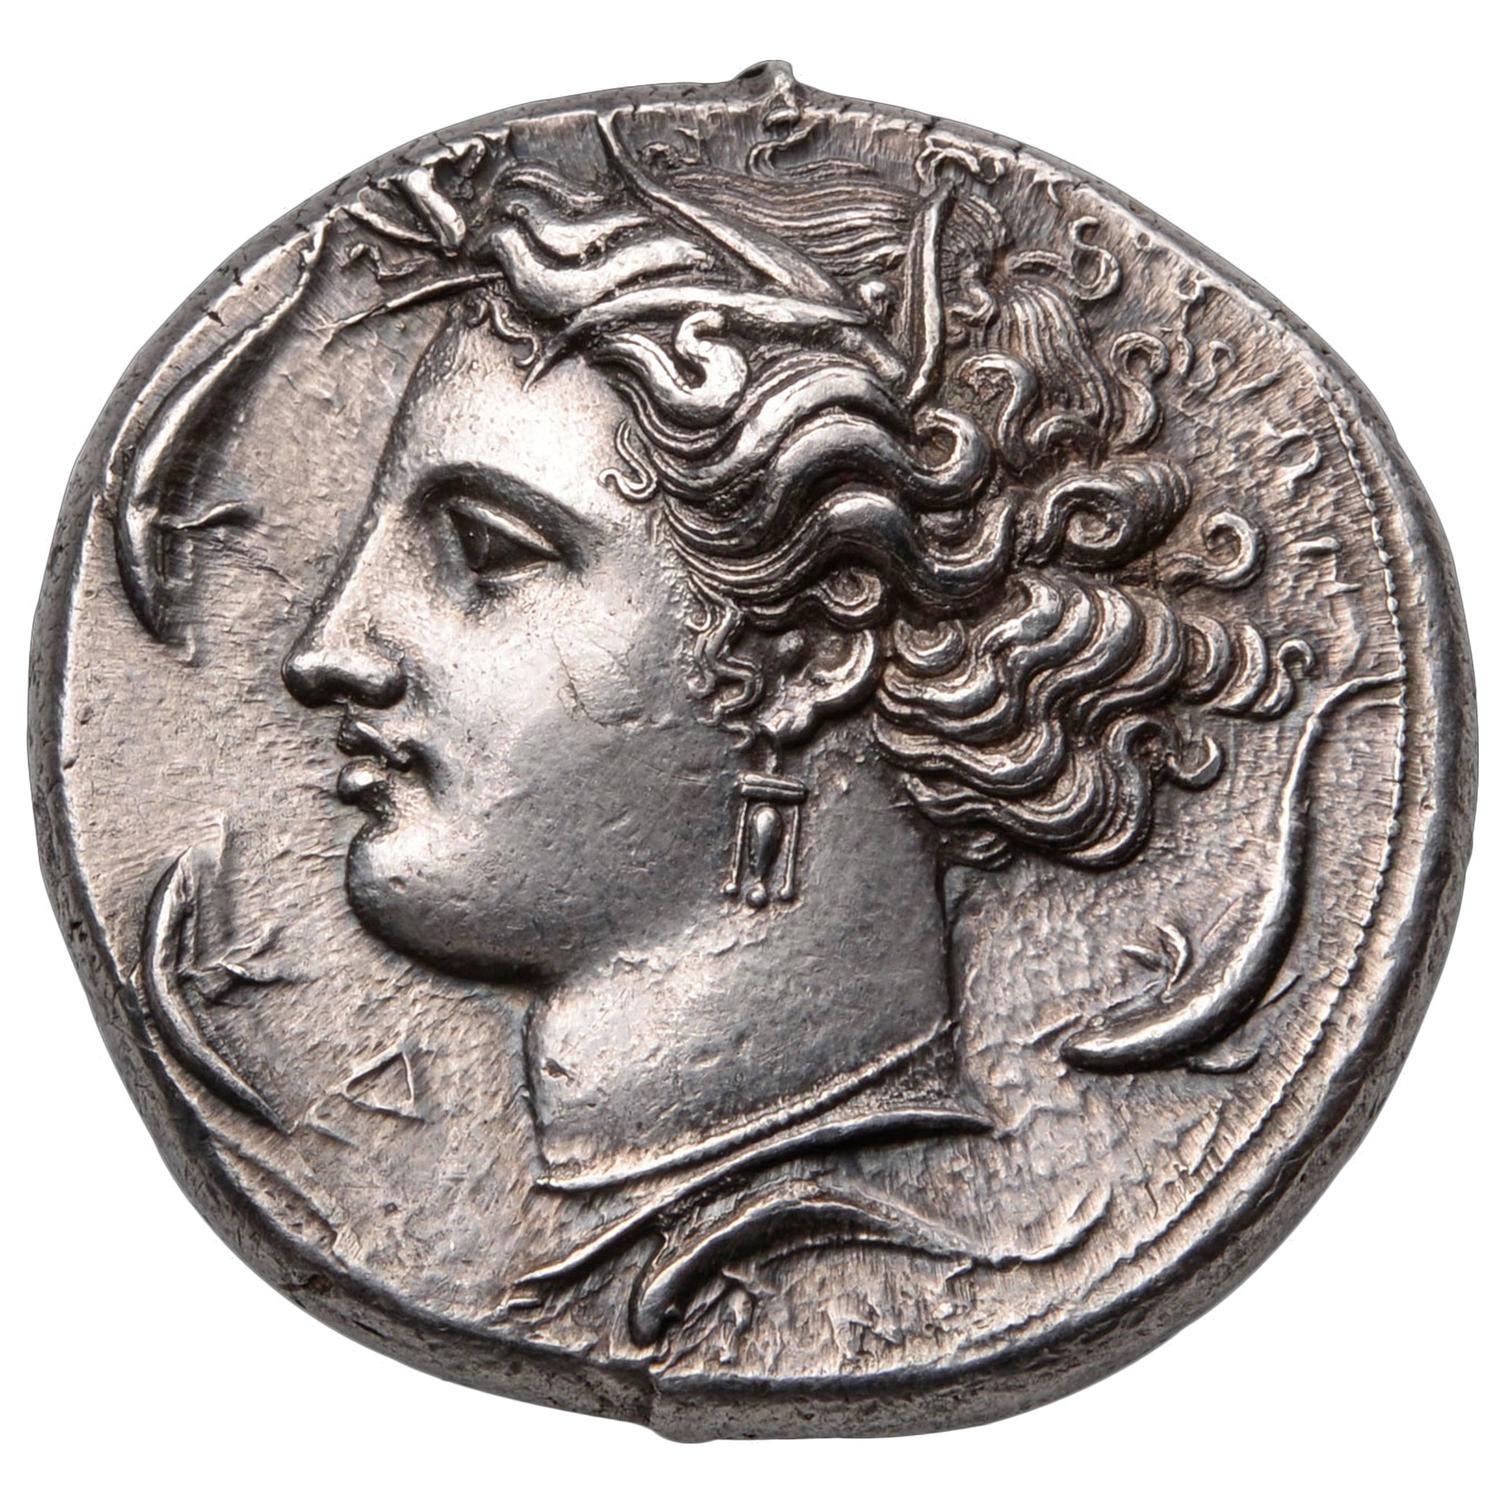 Ancient Greek Silver Decadrachm Coin by Euainetos of Syracuse, 400